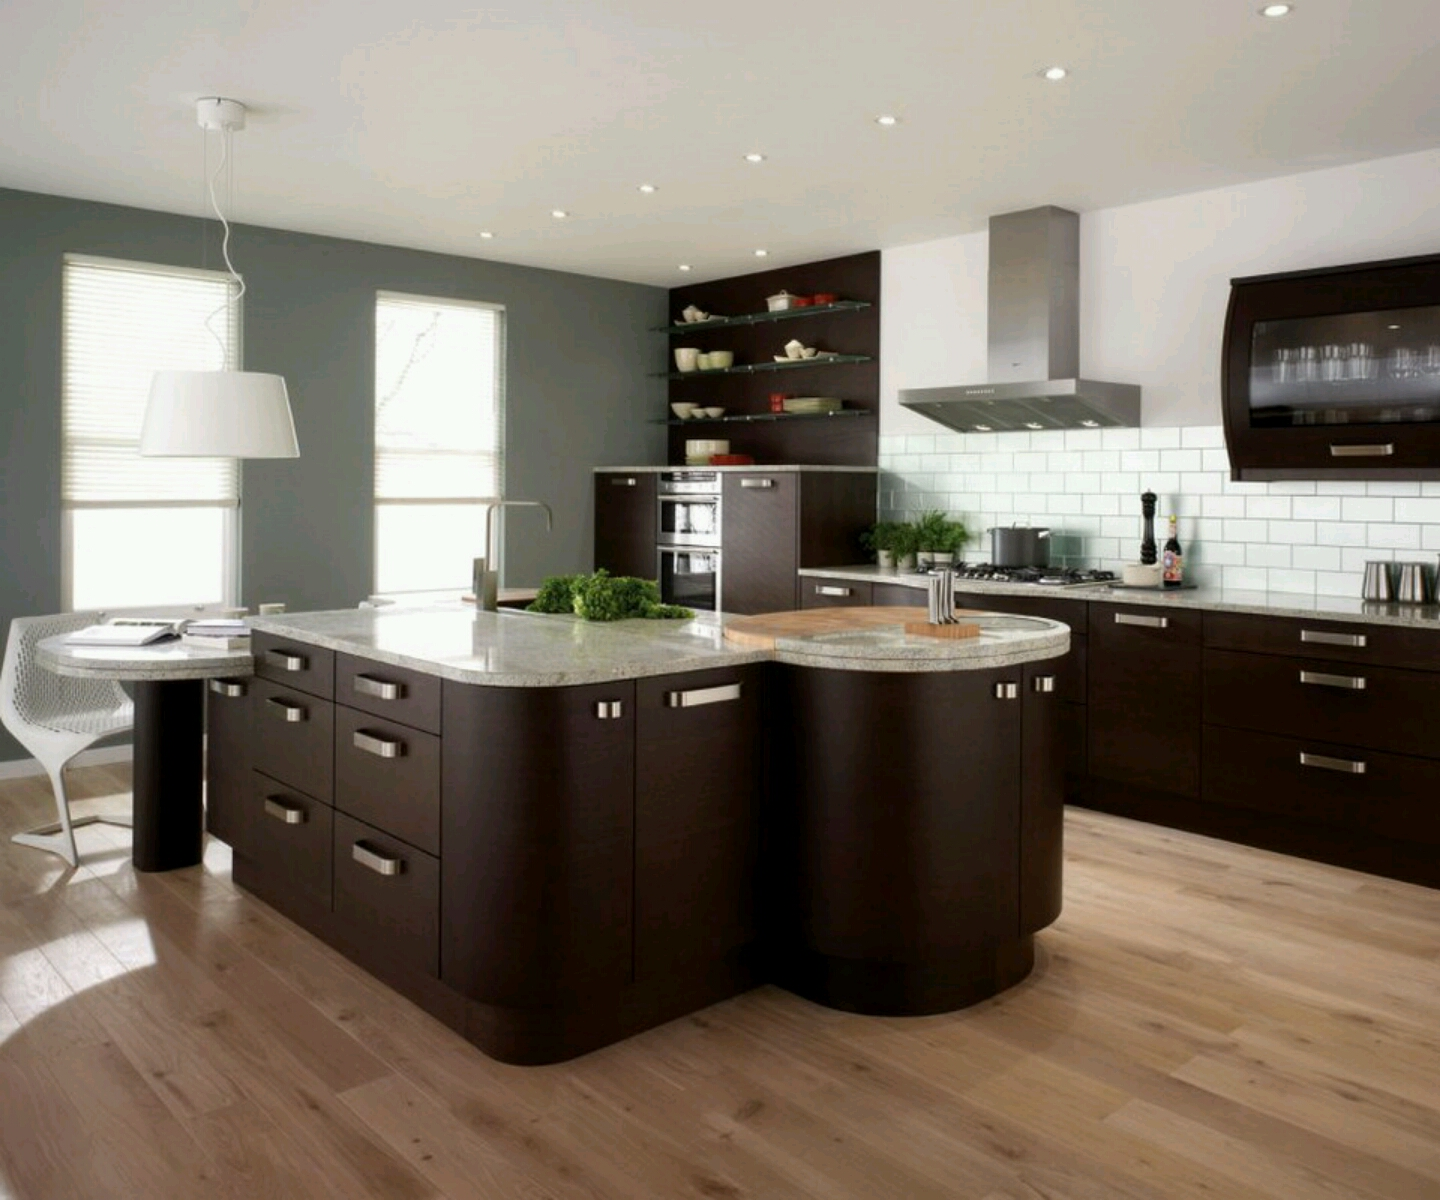 Kitchen Cabinet Designs  Best Home Decoration World Class. Kitchen Table Ideas On Pinterest. Kitchen Oil Storage Ideas. Small Bathroom Inspiration Pictures. Lunch Ideas Melbourne Cbd. Display Ideas Year 4. Backyard Building Ideas. Gift Ideas Mother Of The Groom. Landscaping Ideas Easy Maintenance